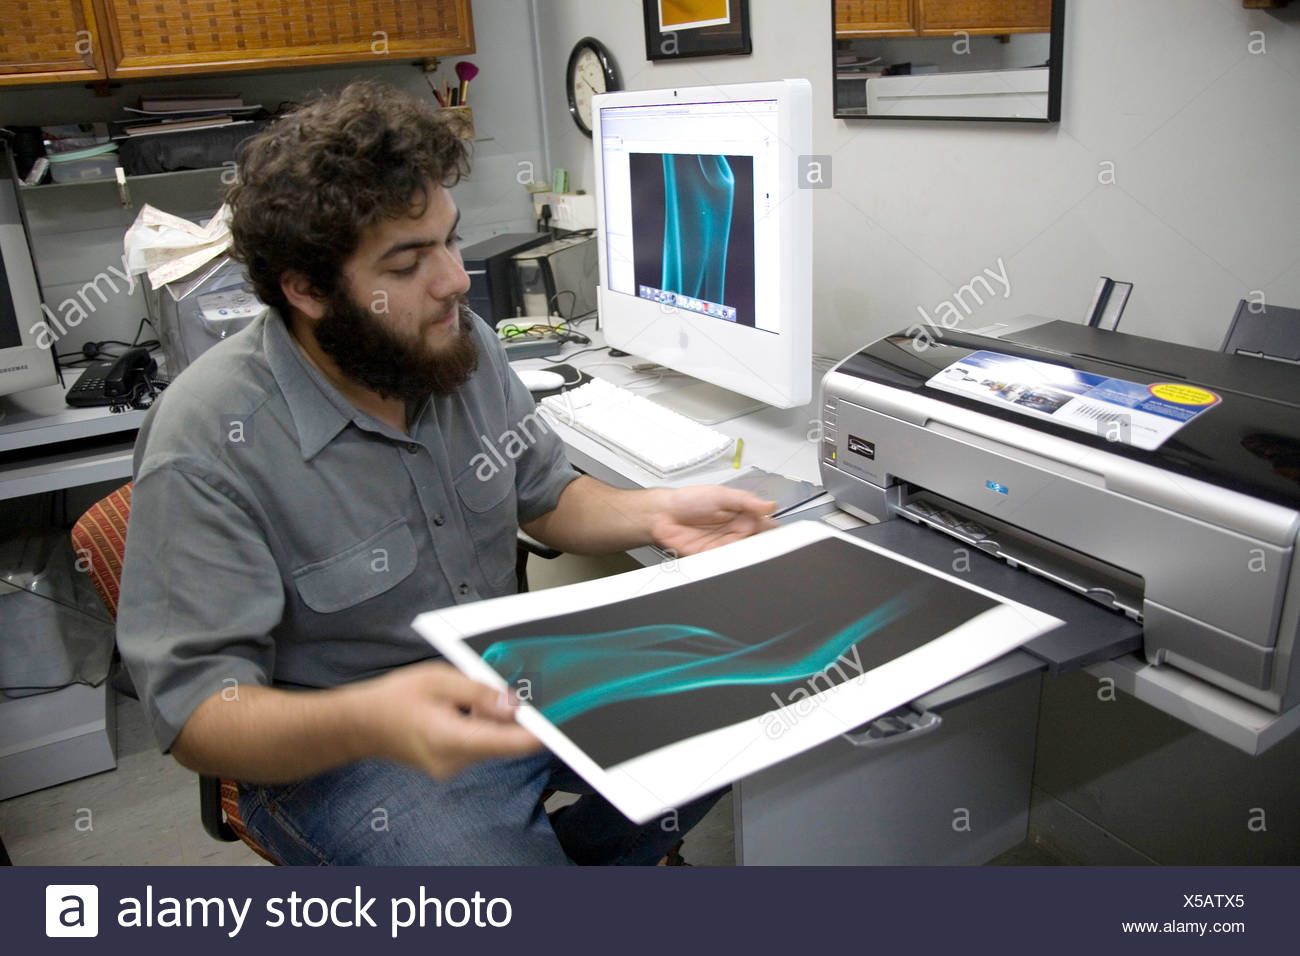 Vivek Manek photographer working on archival epson printer MR - Stock Image